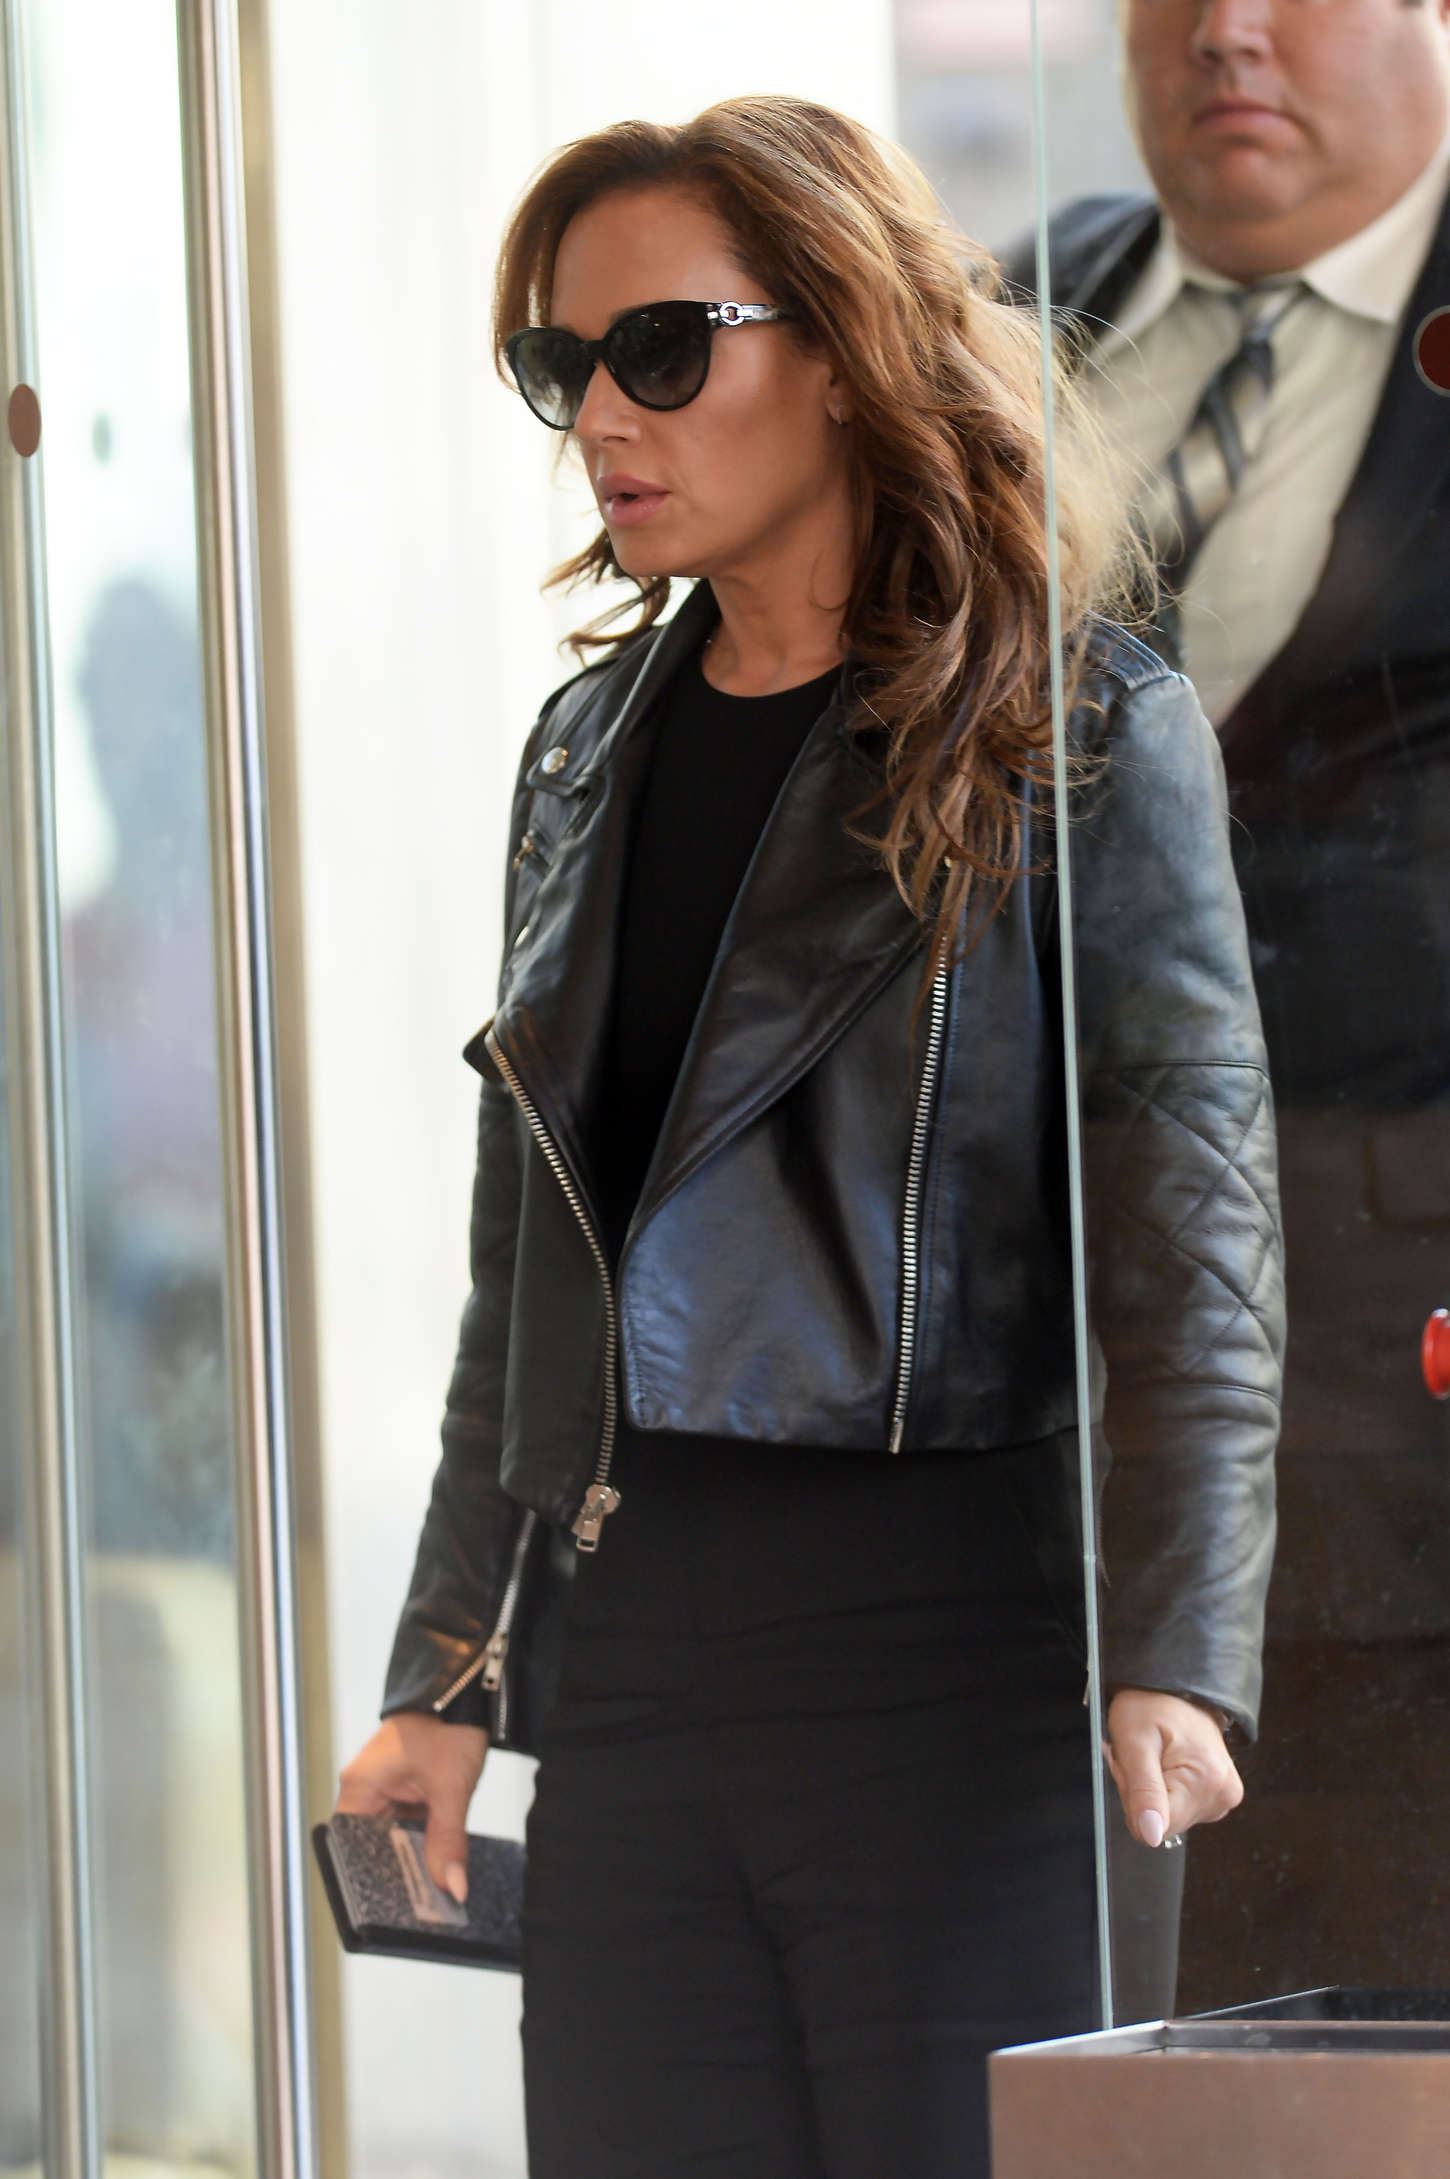 Leah Remini out in New York